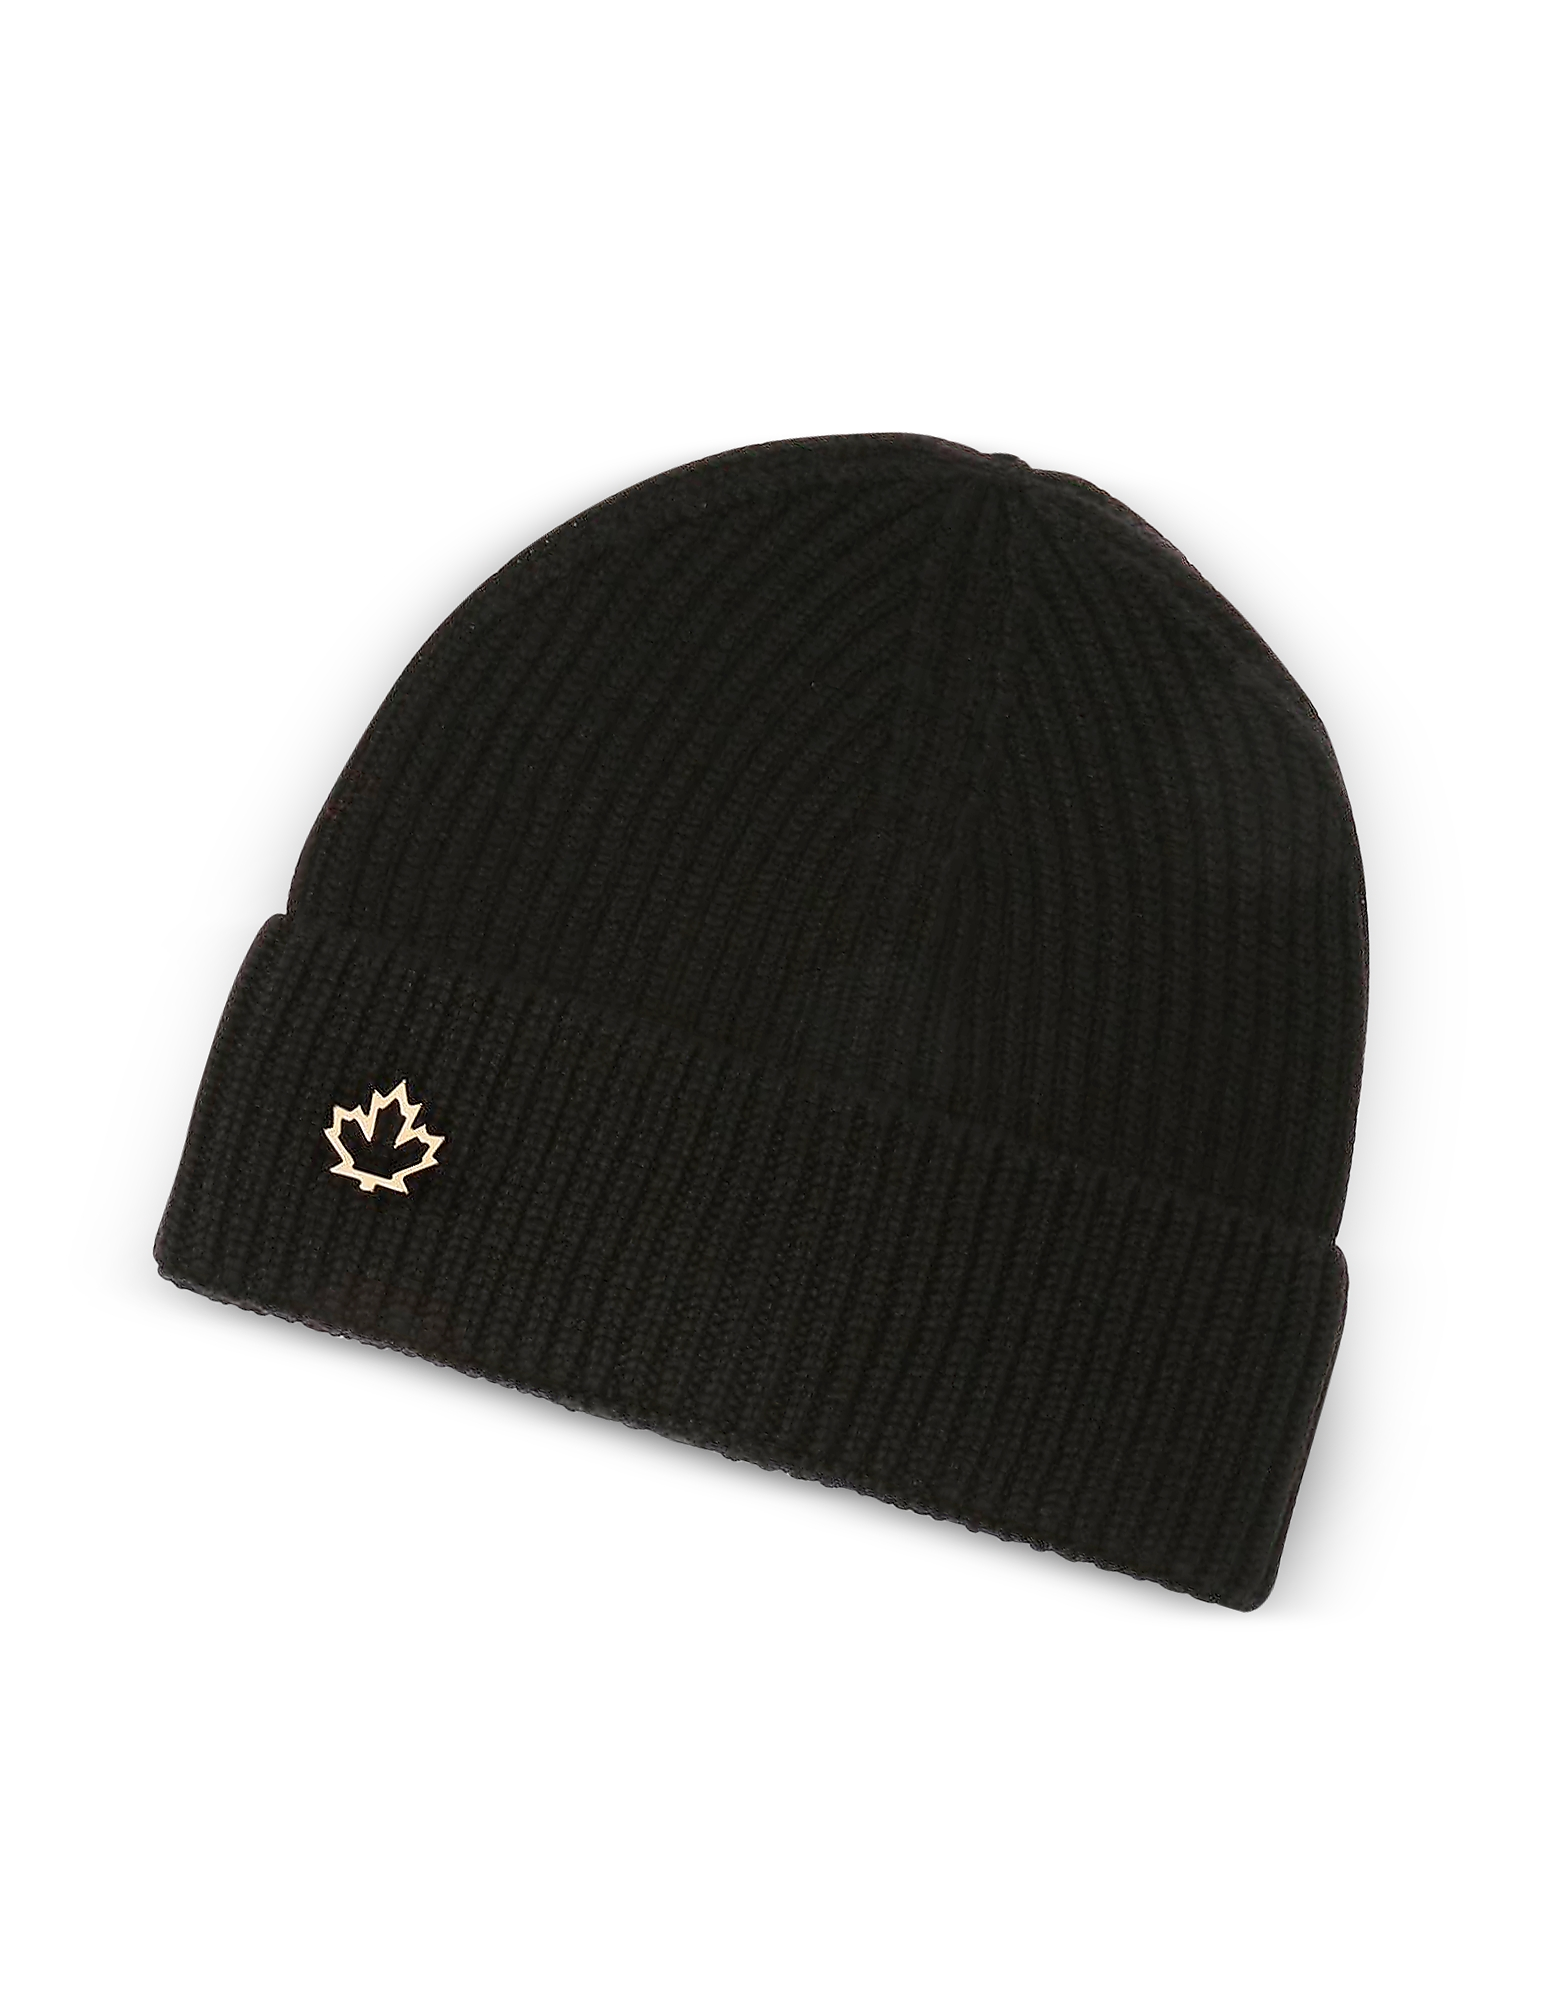 Image of DSquared2 Designer Women's Hats, Solid Wool Women's Knit Hat